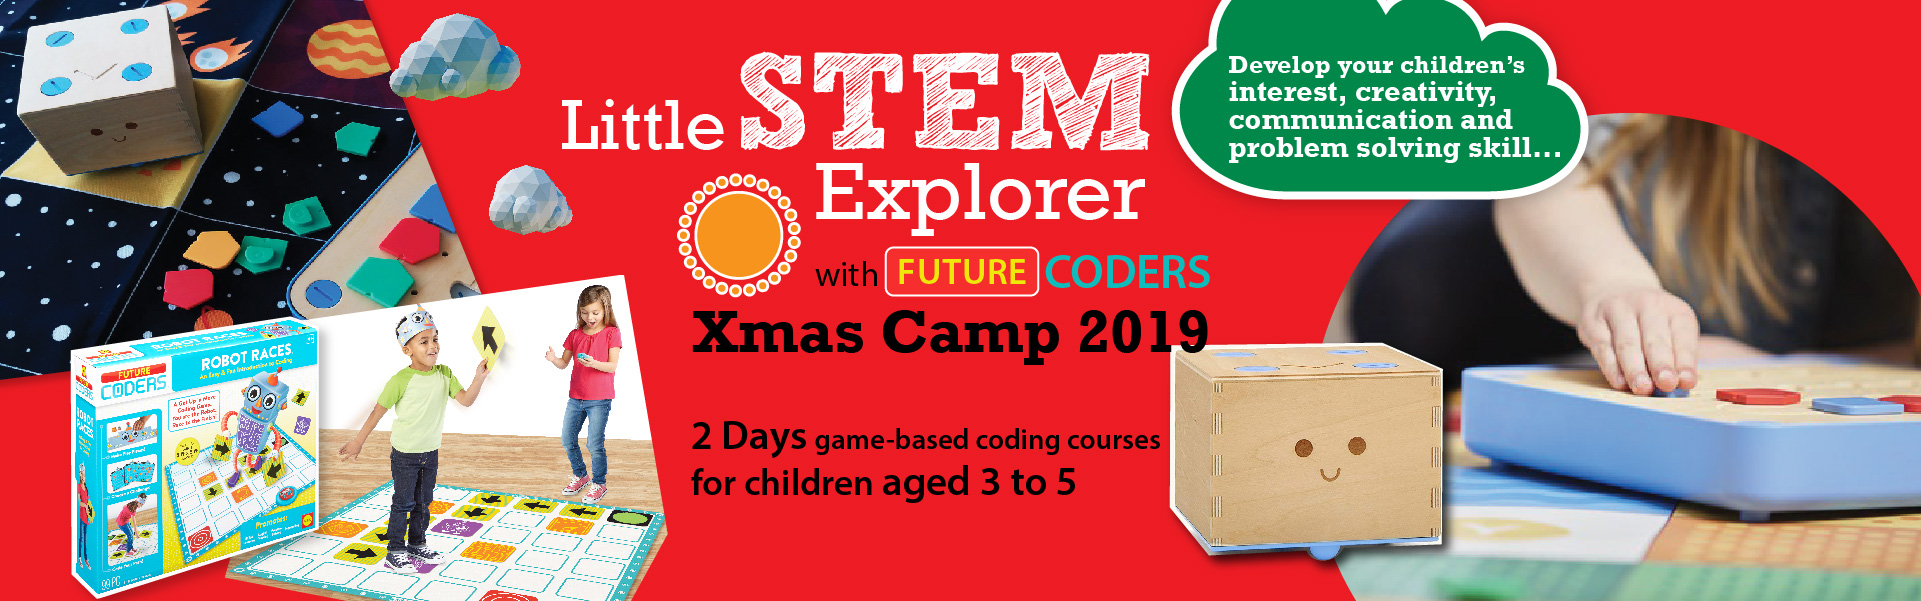 Little STEM Explorer, Xmas 2019